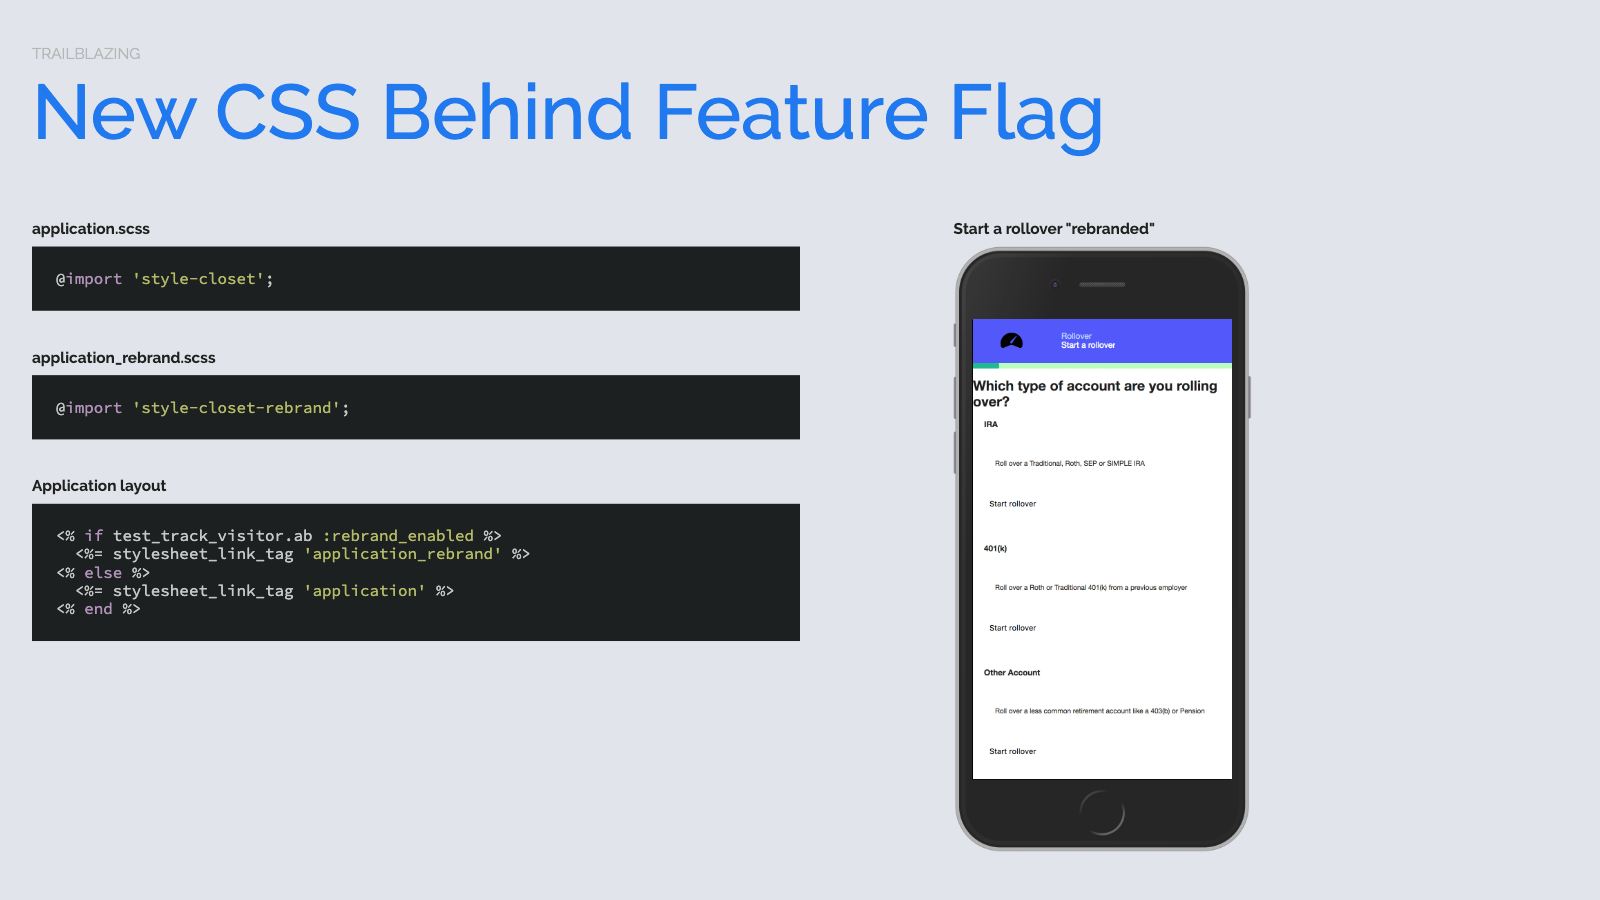 Slide content, Rails app strategy pattern for serving different CSS based on TestTrack rebrand_enabled feature flag. Displaying laughably hacky rebrand styles